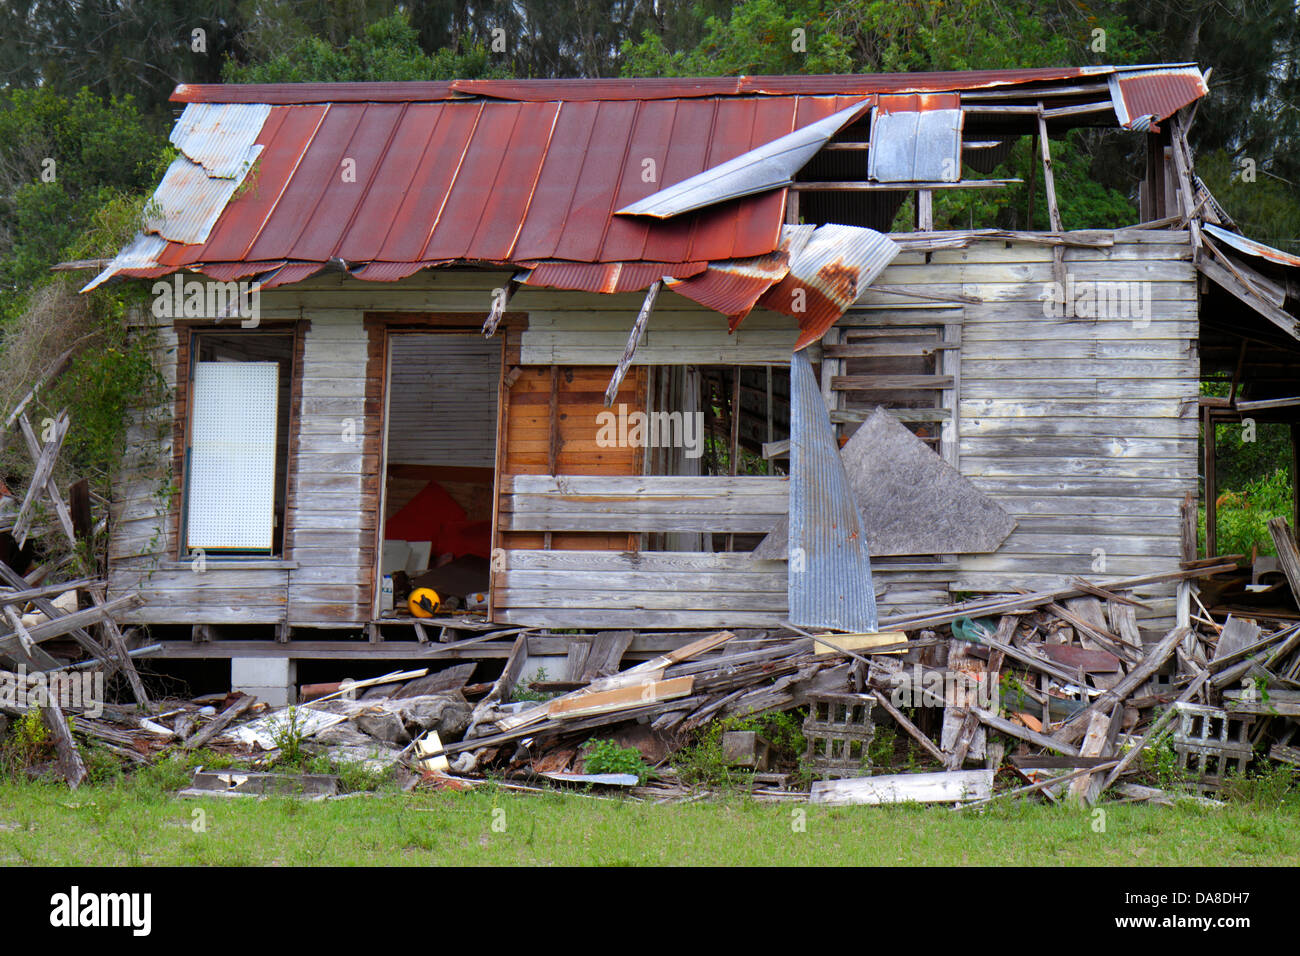 Eye sore stock photos eye sore stock images alamy for Wood frame house in florida